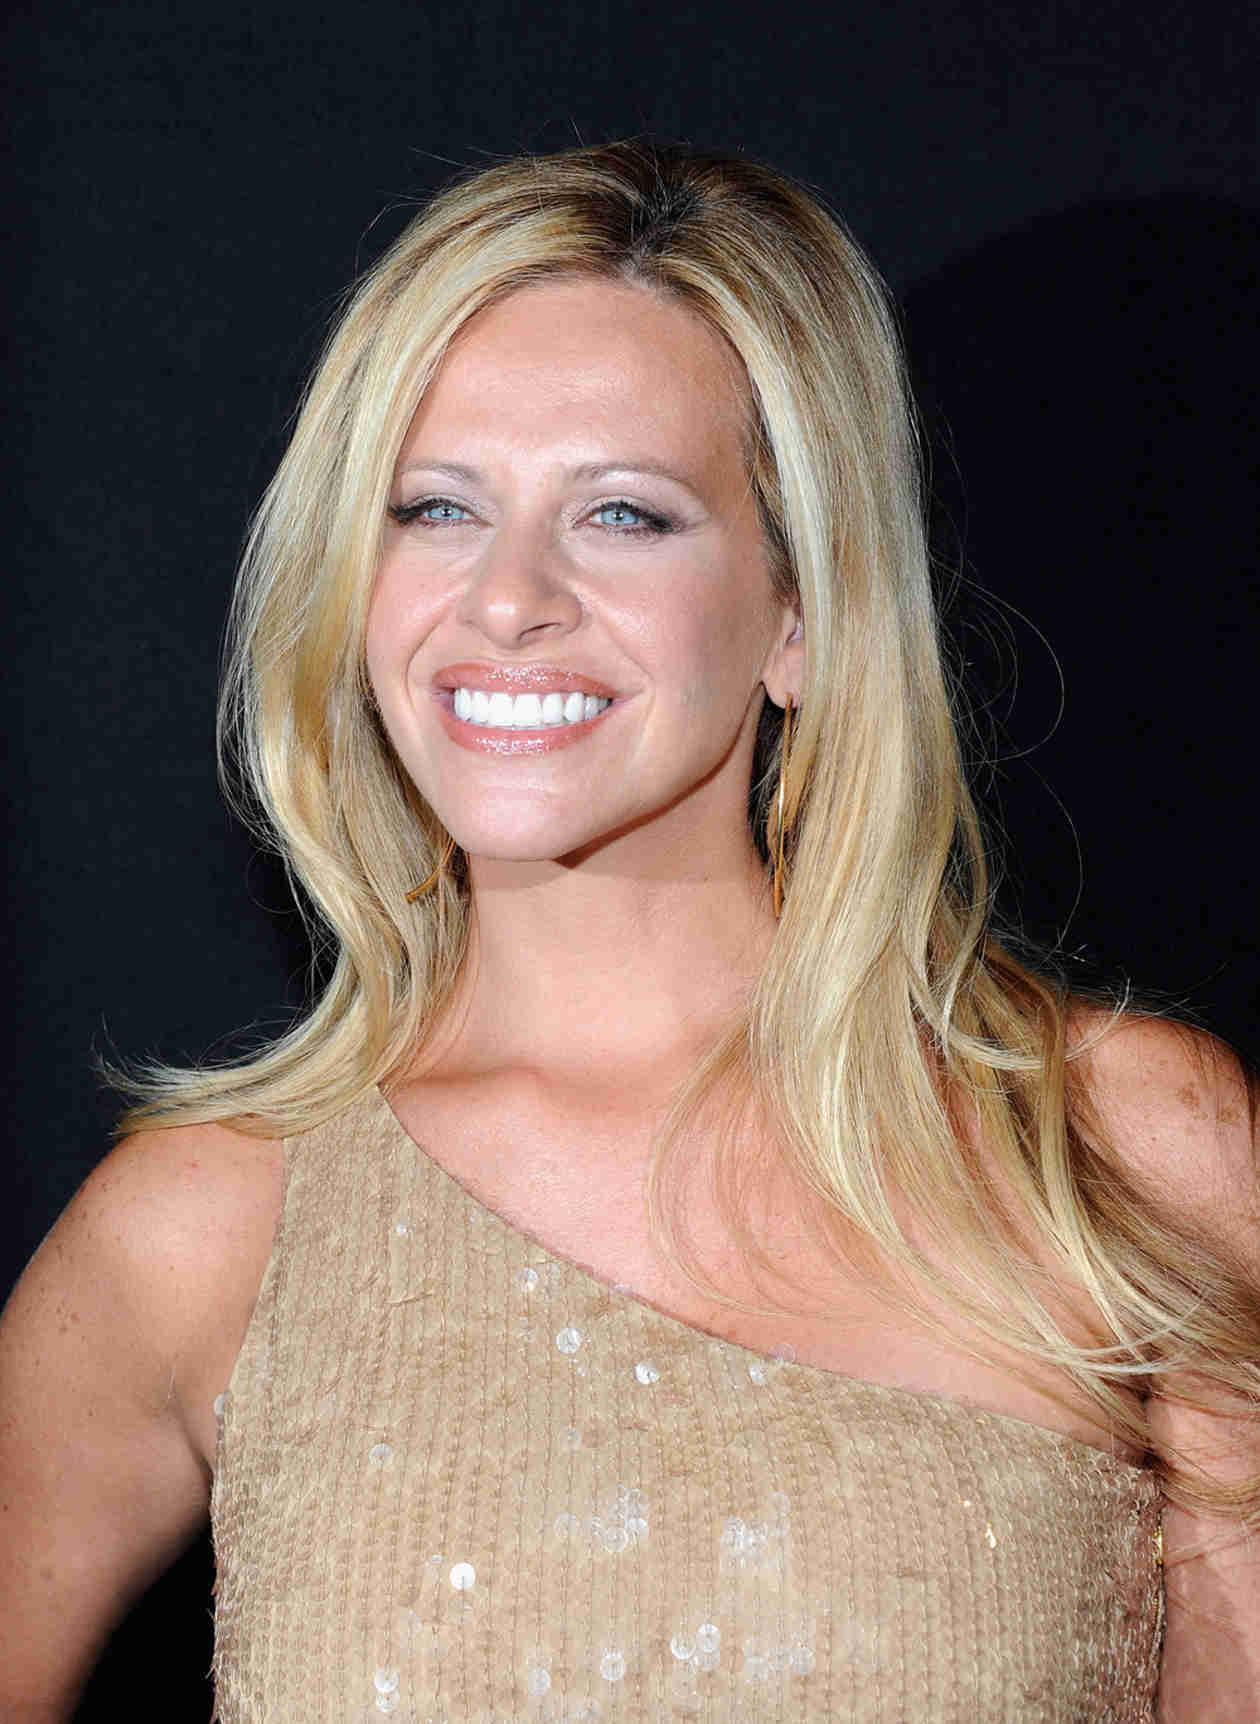 What's Making Dina Manzo So Happy She Could Cry?